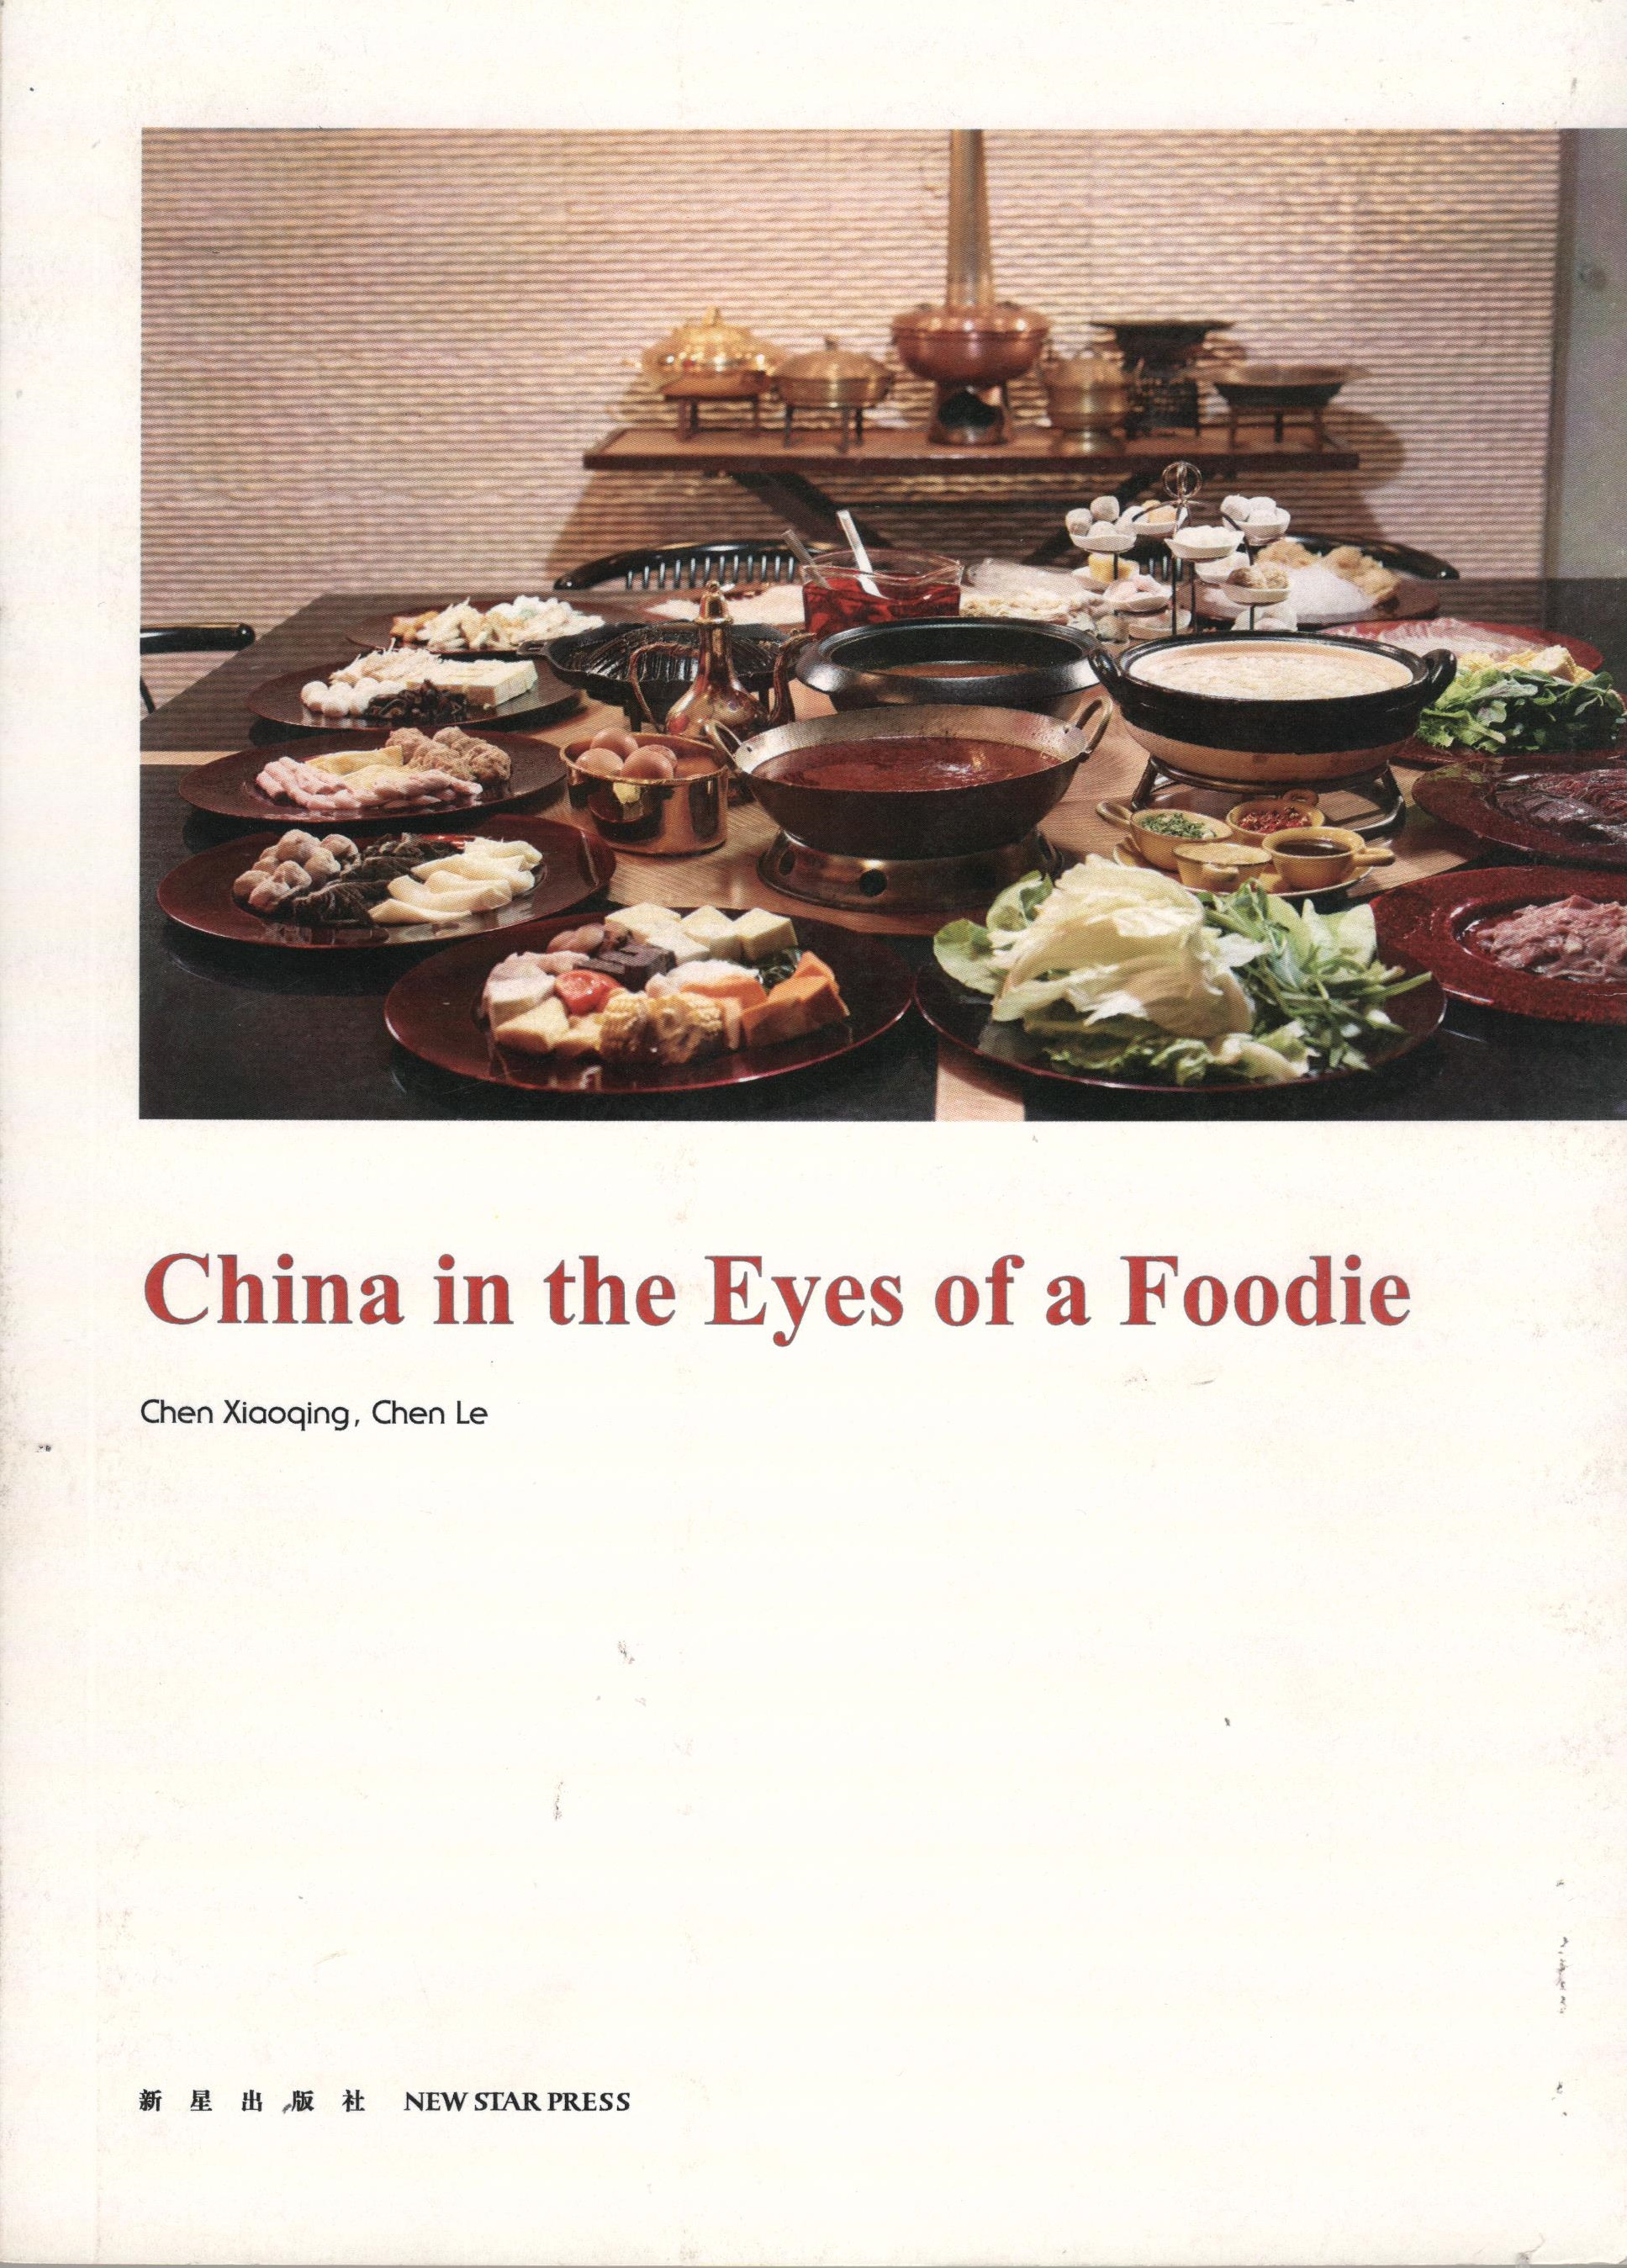 China in the Eyes of a Foodie